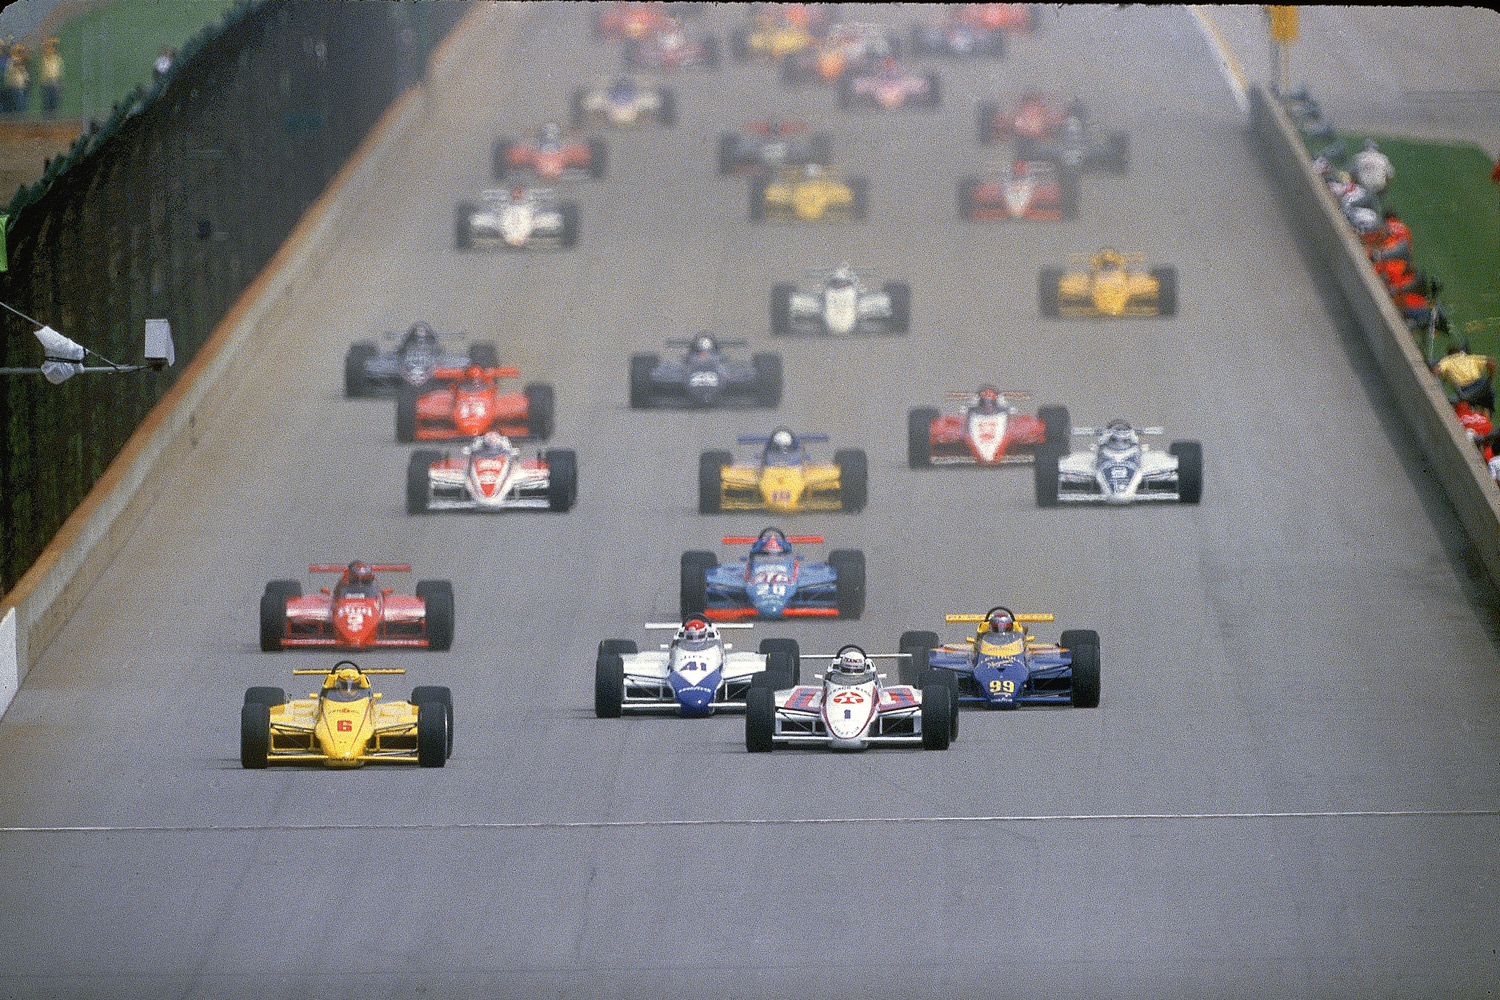 Starting from the third position, Mears (6) led the field fro 119 of the 200 laps, his only Indy victory that did not start from the pole. He won a record six poles at Indy.